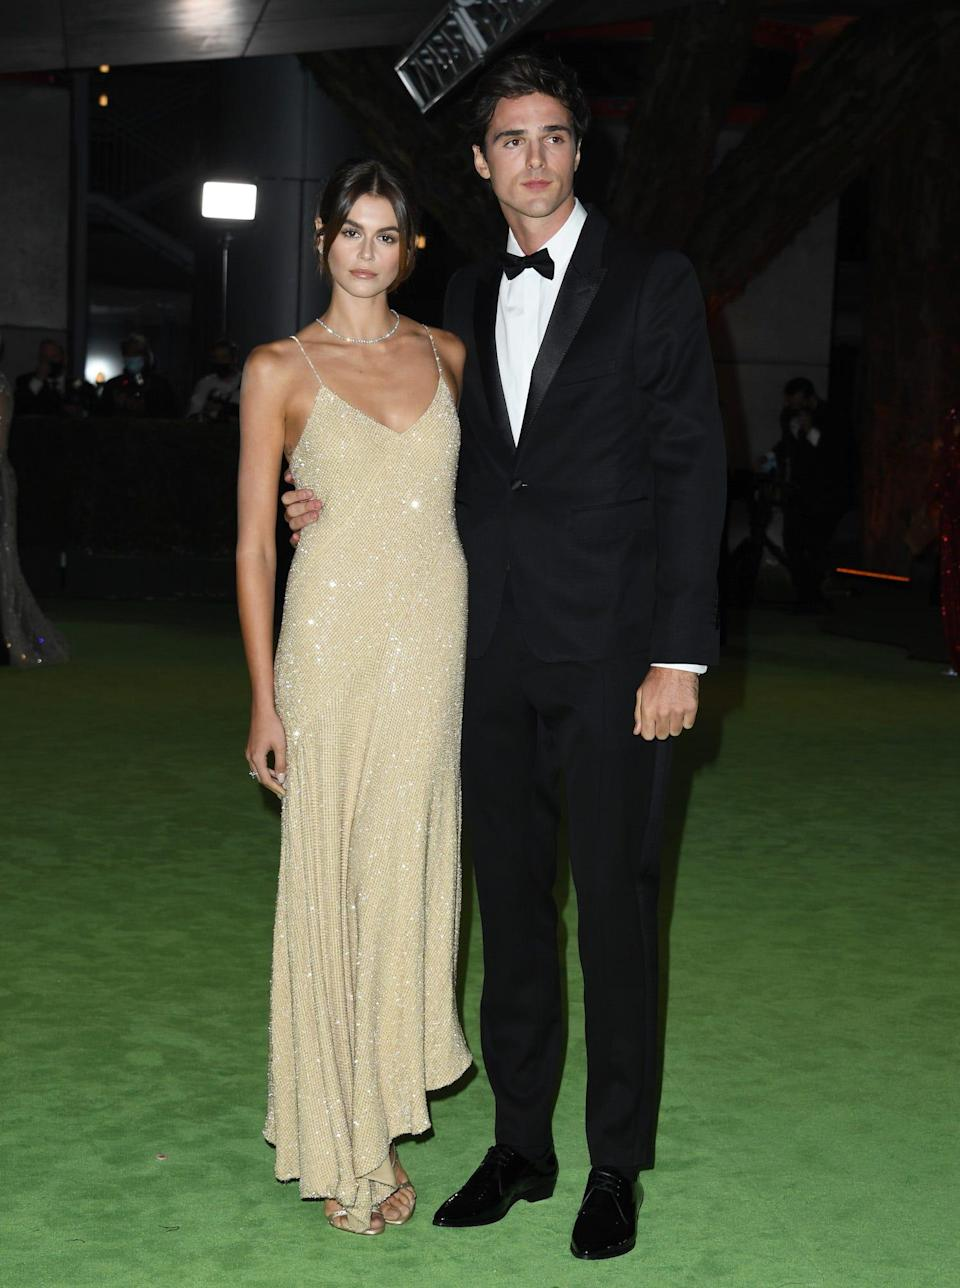 Kaia Gerber and Jacob Elordi walk the red carpet together in September 2021.